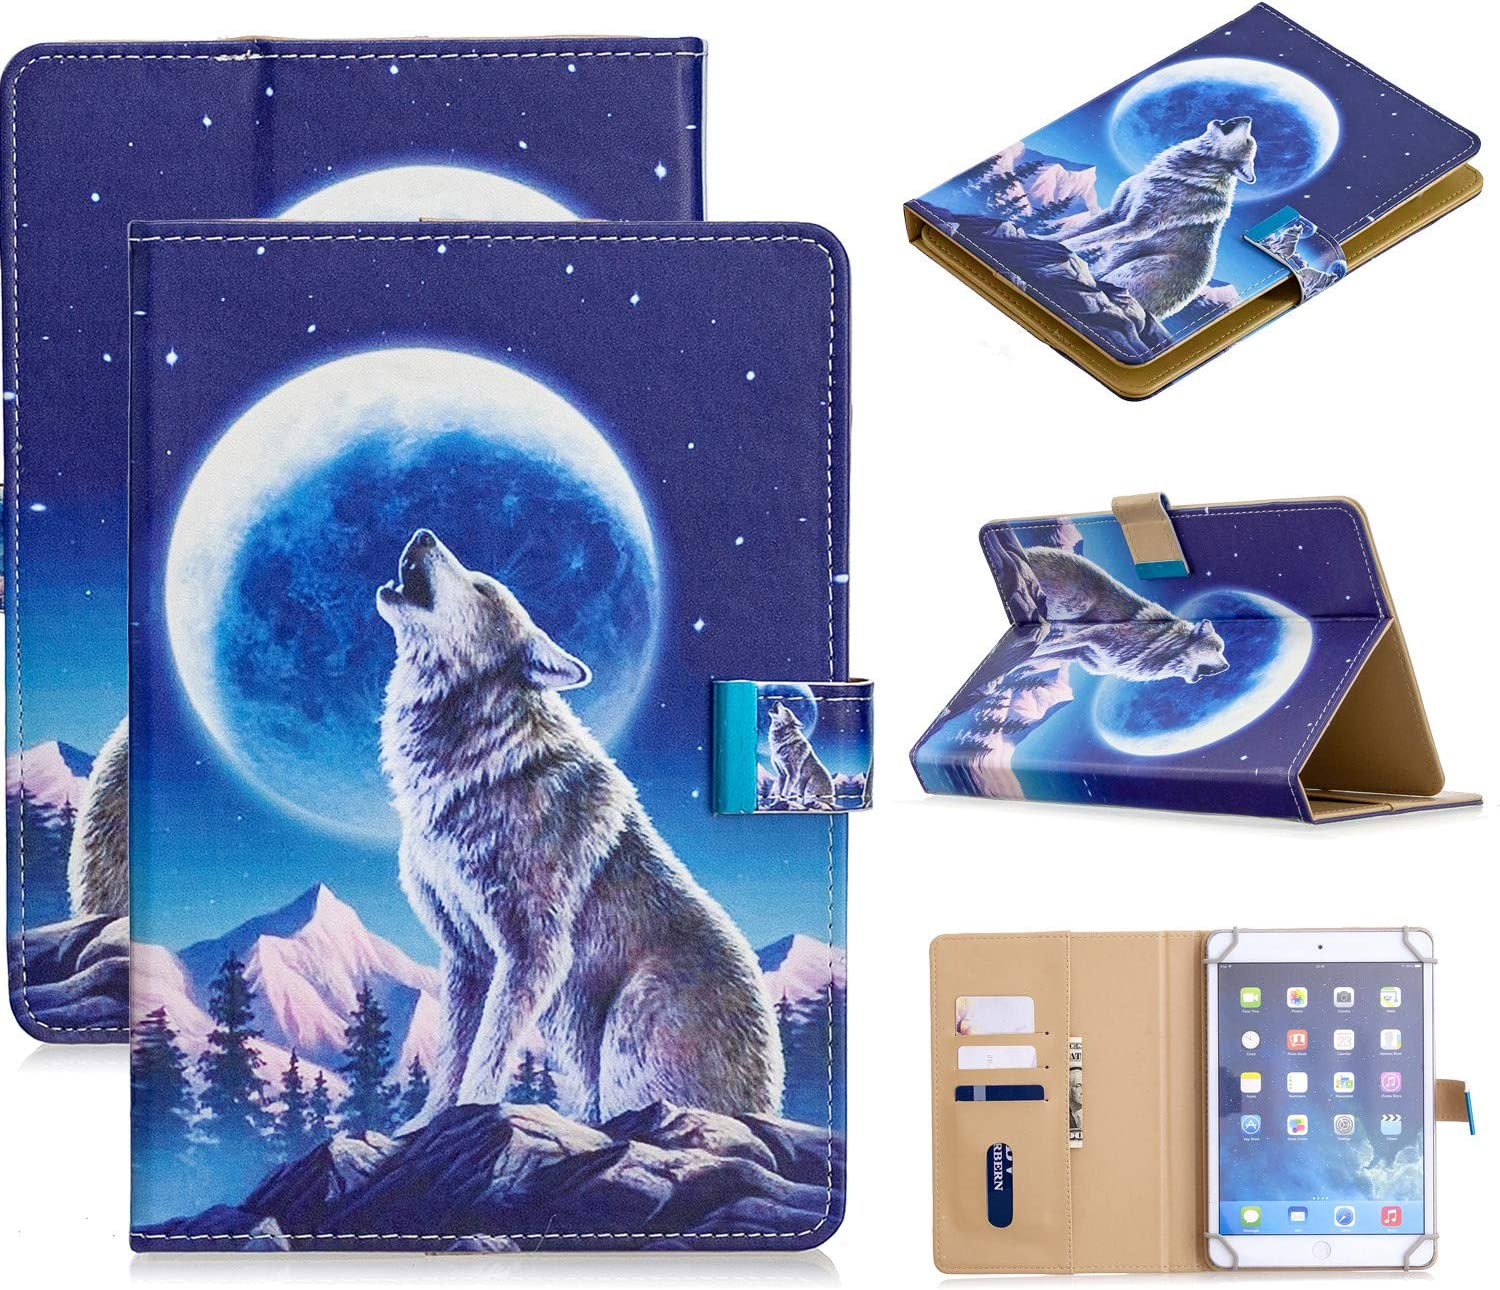 Universal Case for 9.5-10.5 Inch Tablet, APOLL Synthetic Leather Magnetic Closure Card Slots Wallet Case for G oogle Nexus 10/for HD 10.1/ and Other 9.7/10/10.1/10.3/10.5 inch Tablet, Moon Wolf